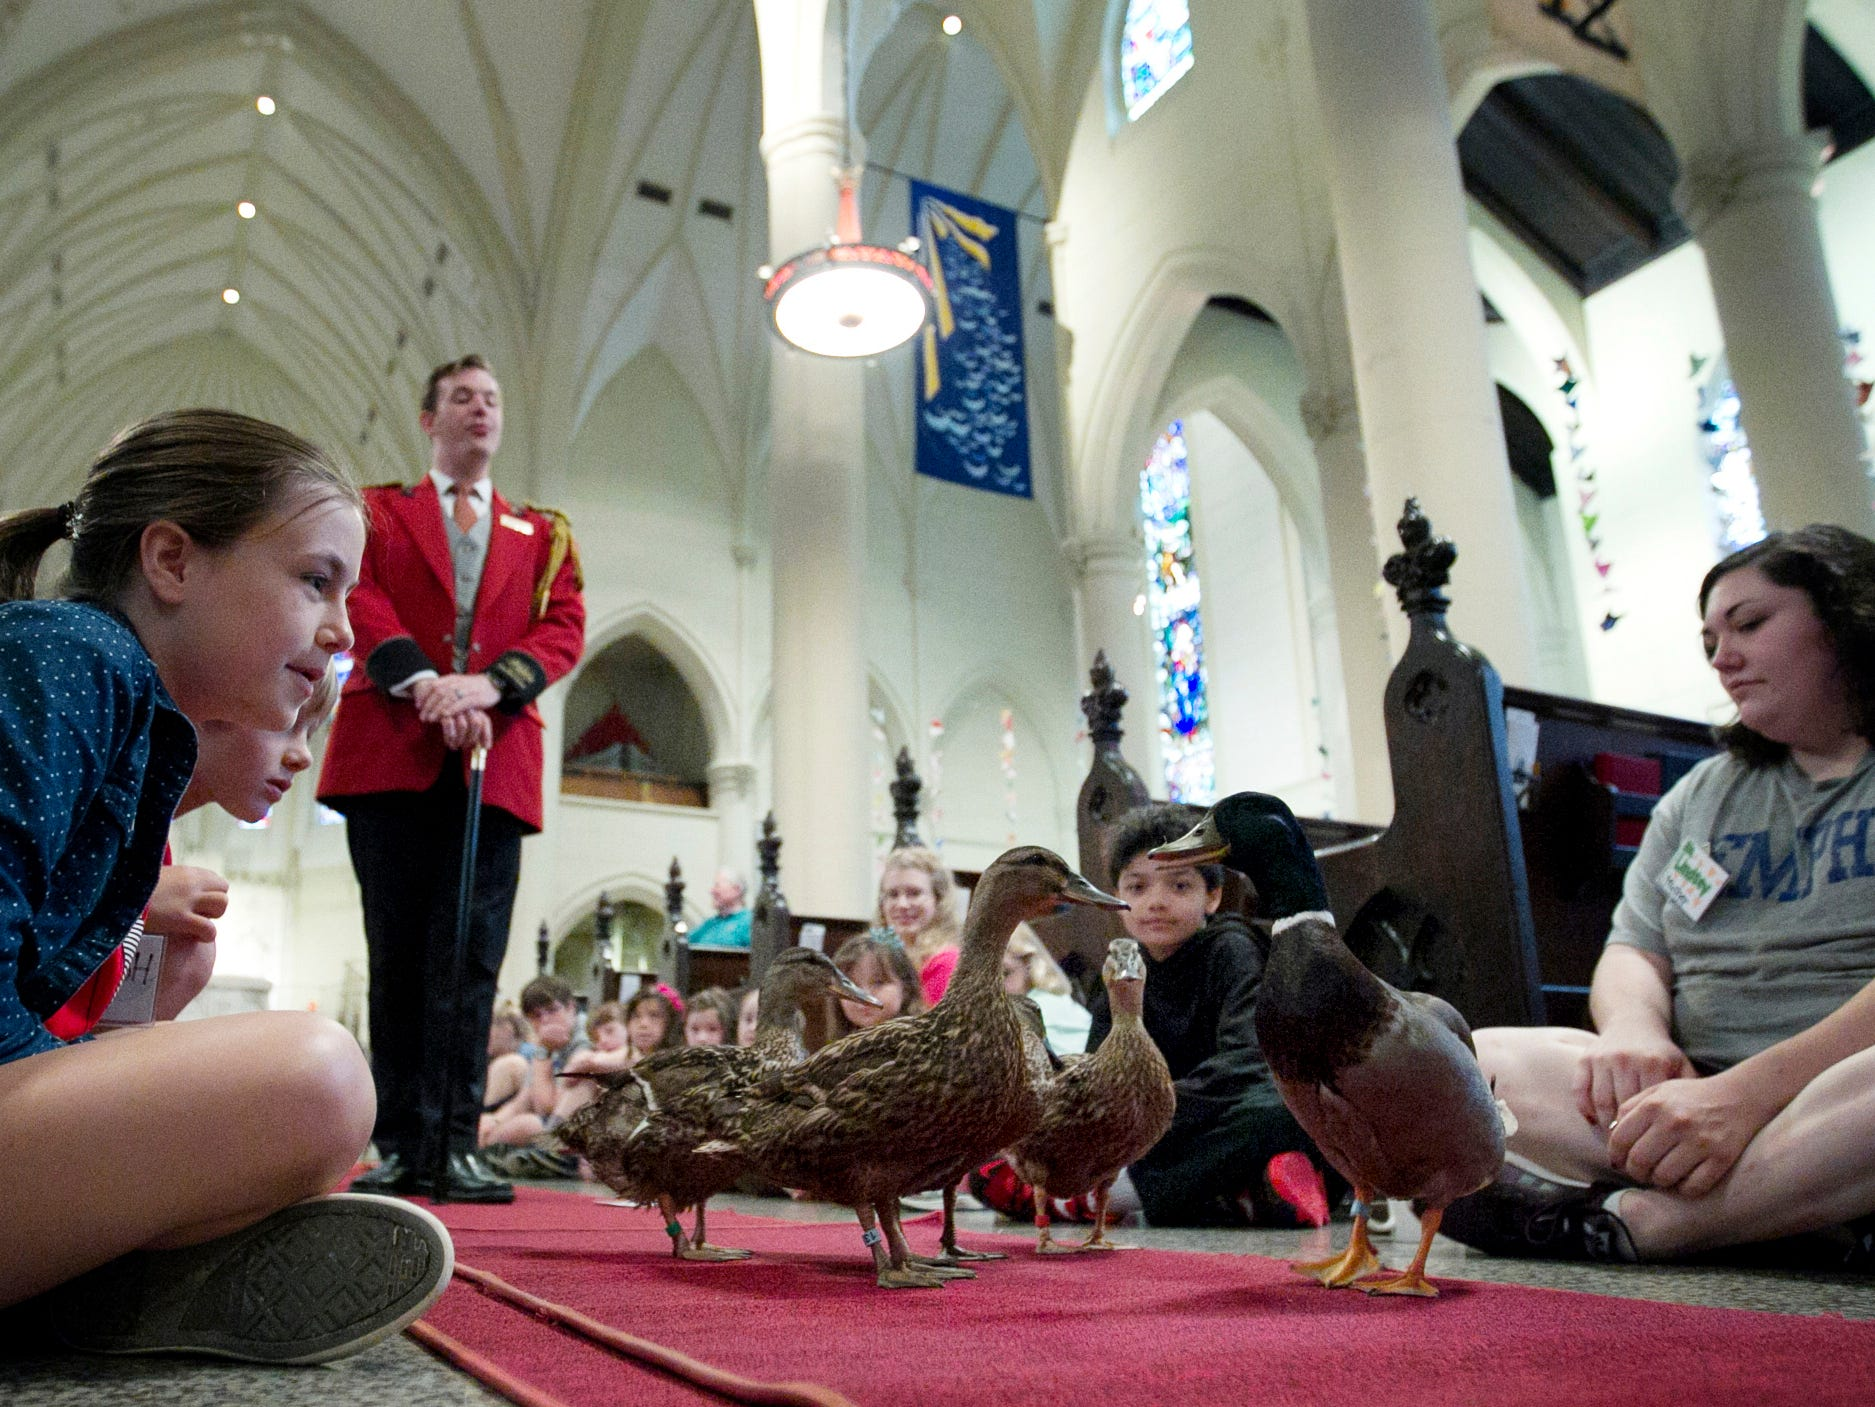 Hayden Hedges, 10, left, and other students at the St. Mary's Summer Day Camp watch as Peabody Hotel Duckmaster Anthony Petrina marches the ducks through St. Mary's Episcopal Cathedral on June 2, 2015. The camp is focusing on Memphis history and had Petrina and his famous water fowl visit with the kids before giving a brief history lesson on the Peabody and its ducks before they made their morning debut in the hotel's lobby.